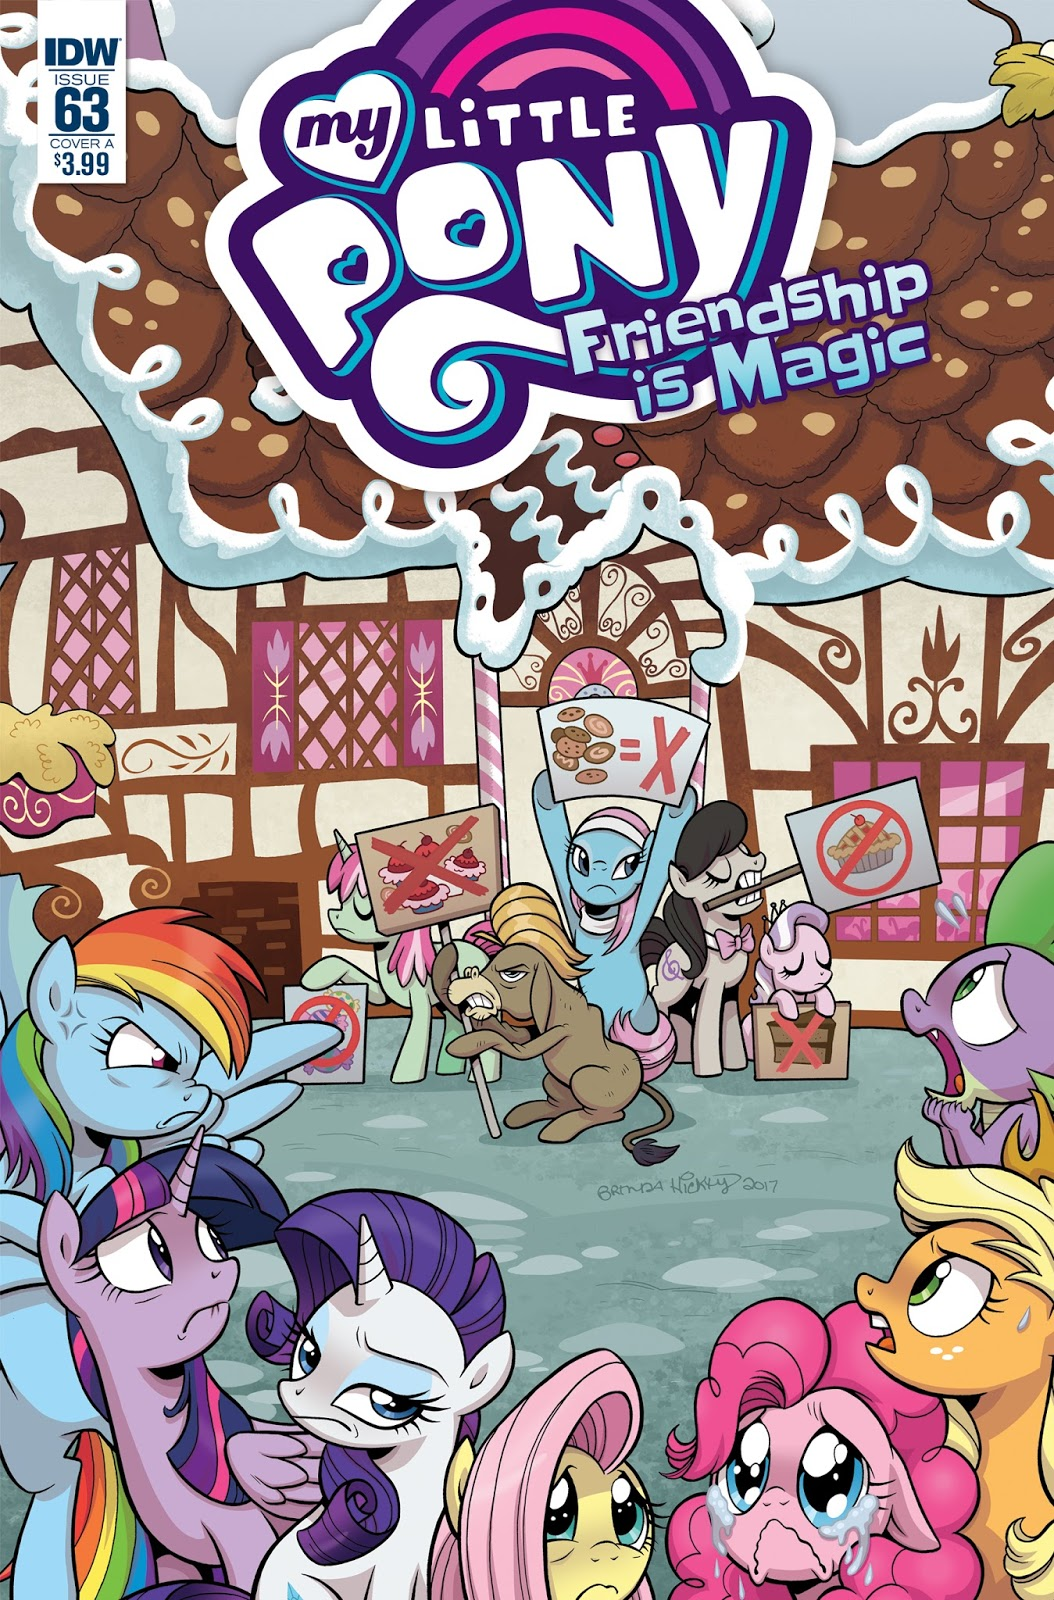 Friendship is Magic Issue 63